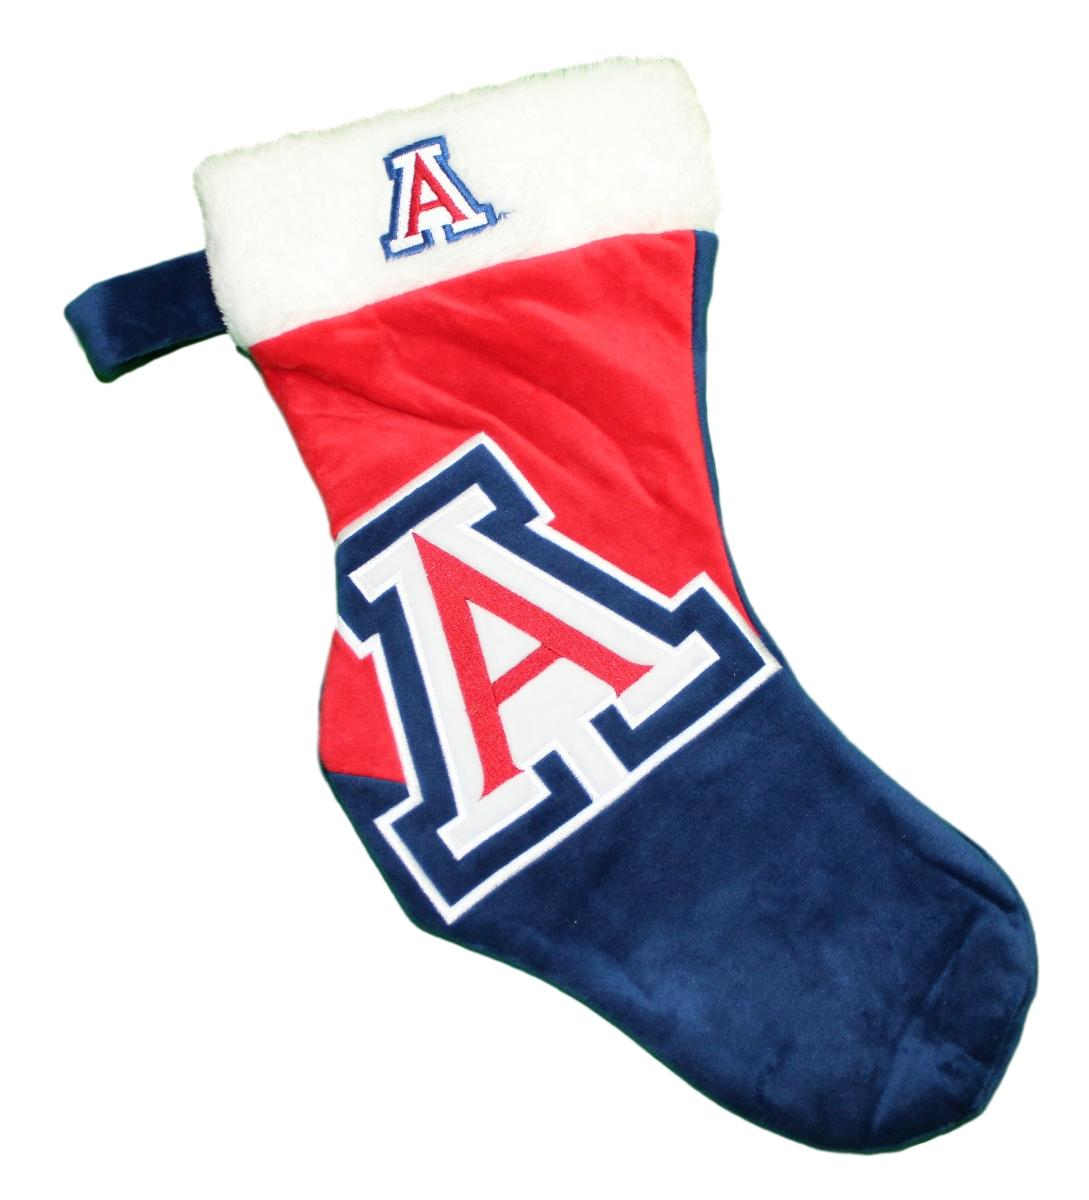 Arizona Wildcats 2018 NCAA Basic Logo Plush Christmas Stocking